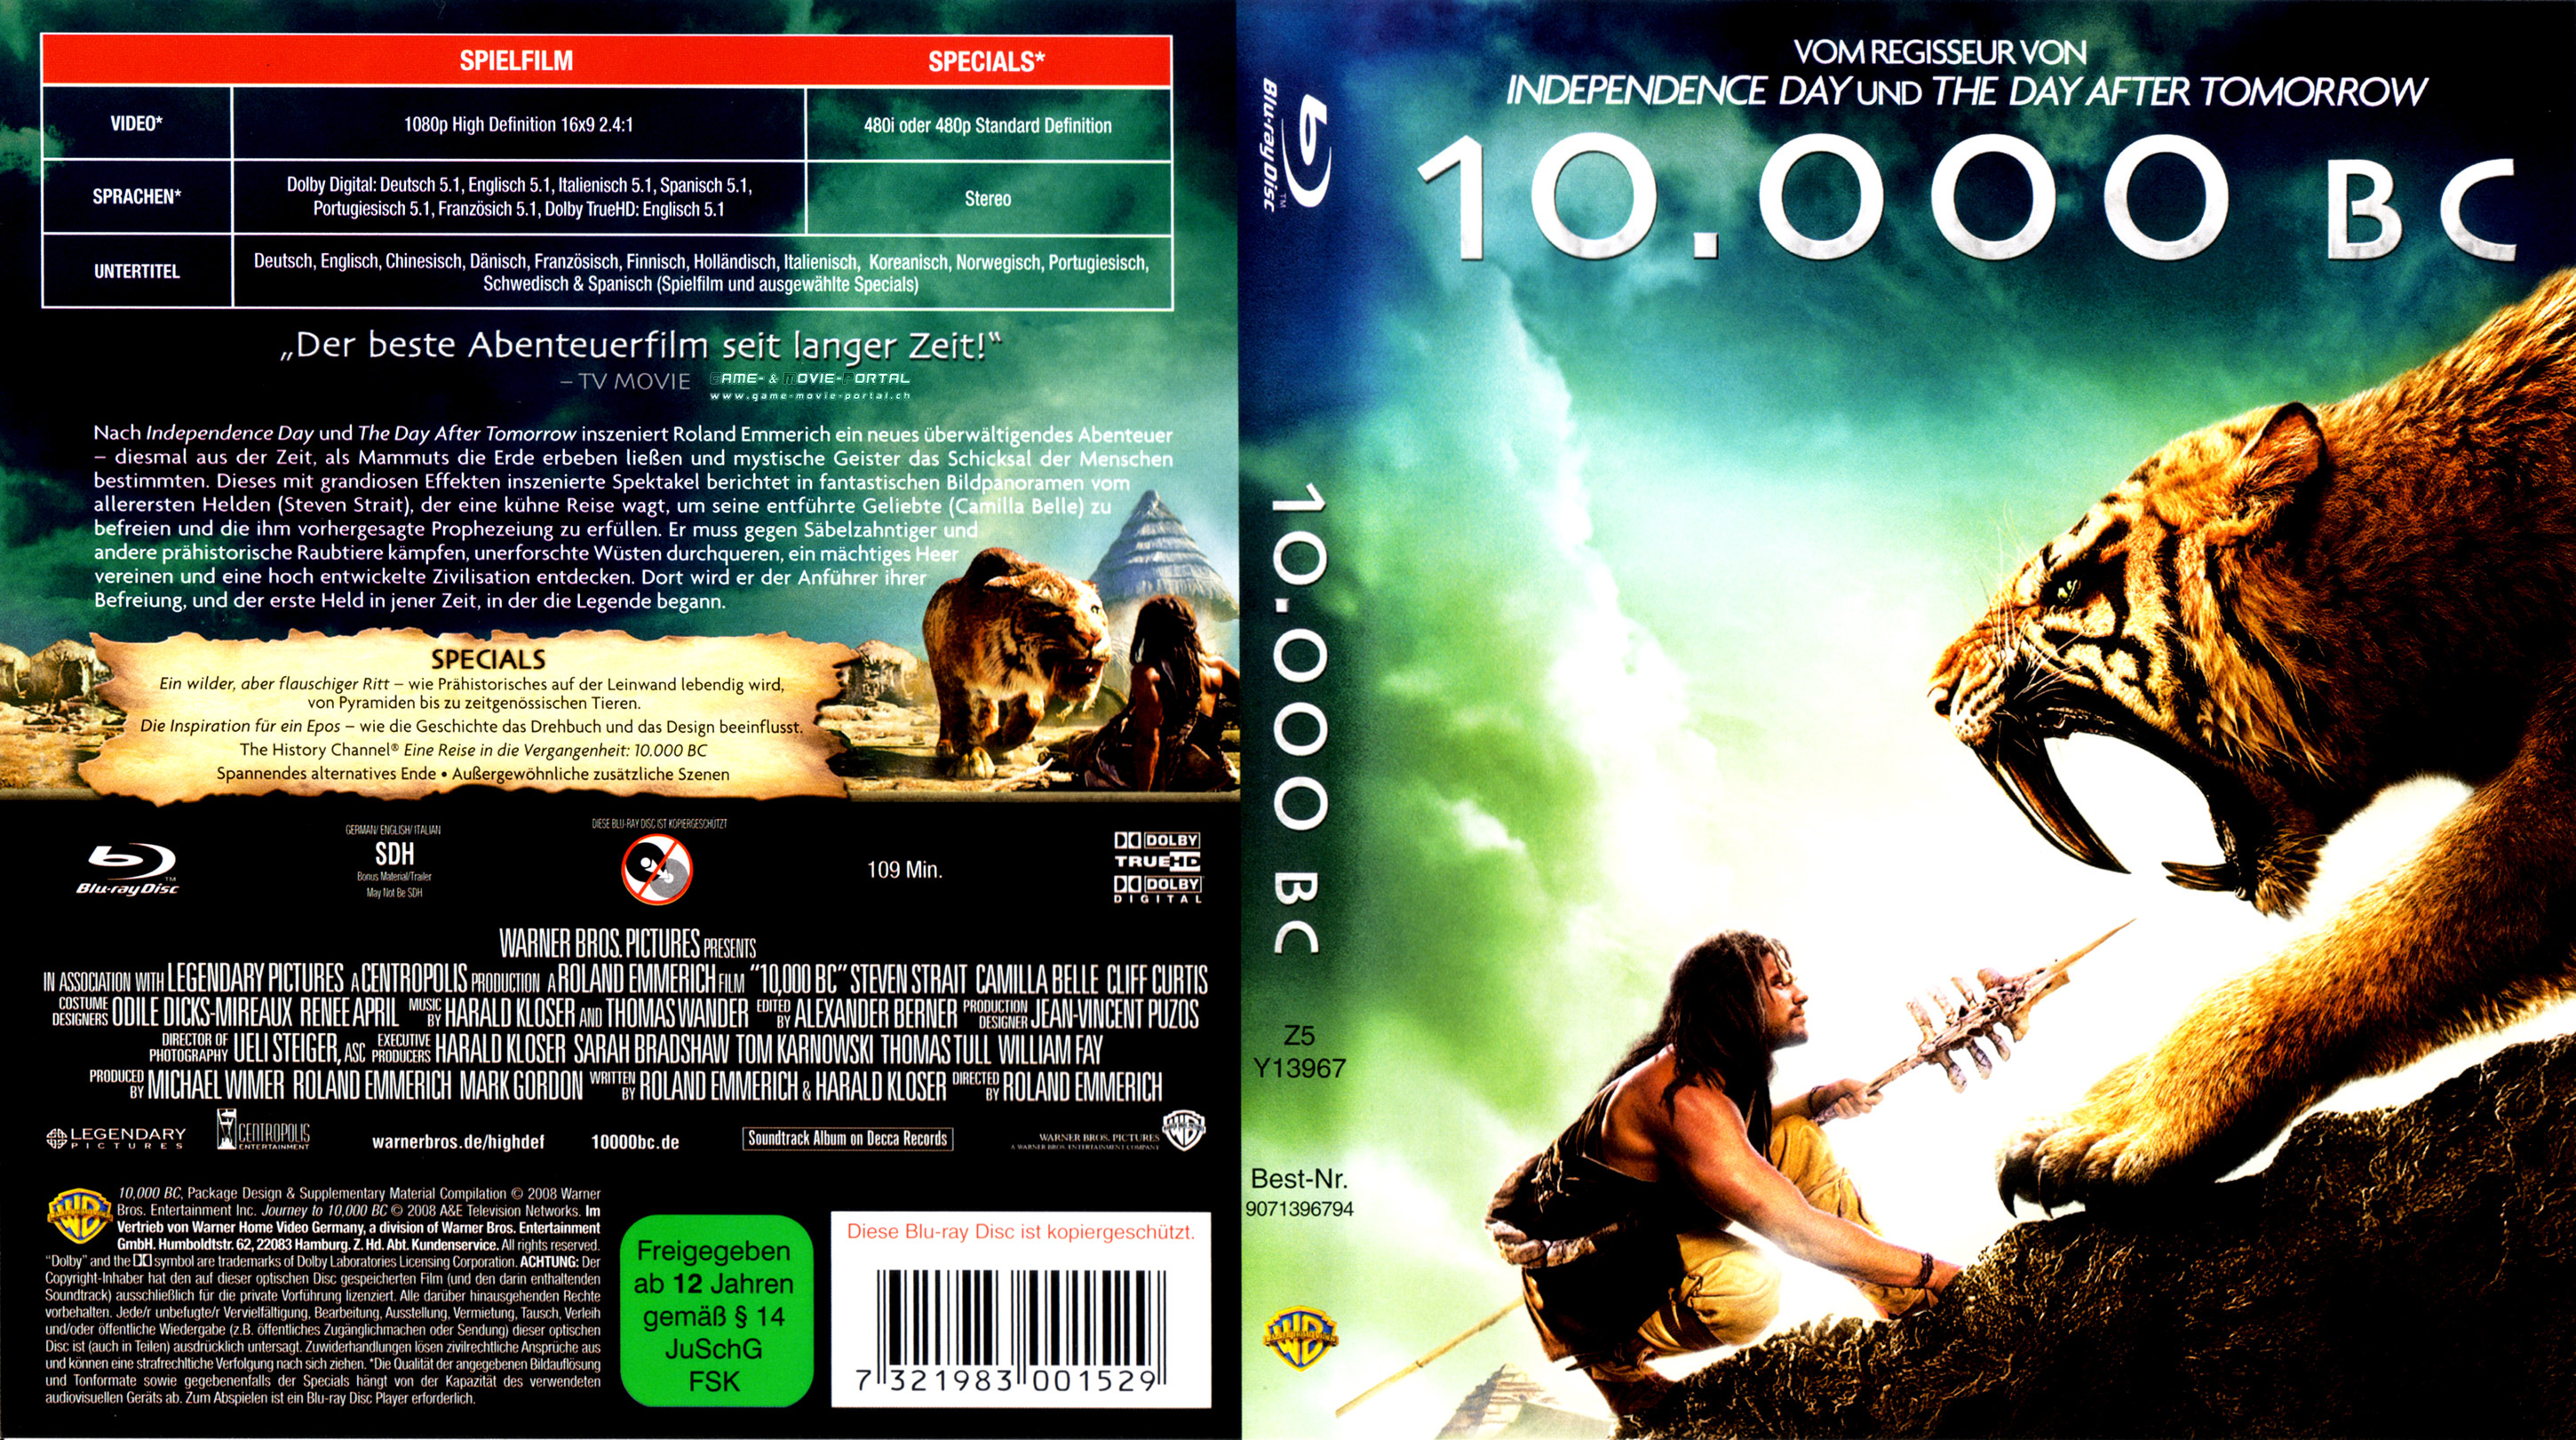 German Covers - Blu-ray Covers BD Covers - 10000 BC, 12